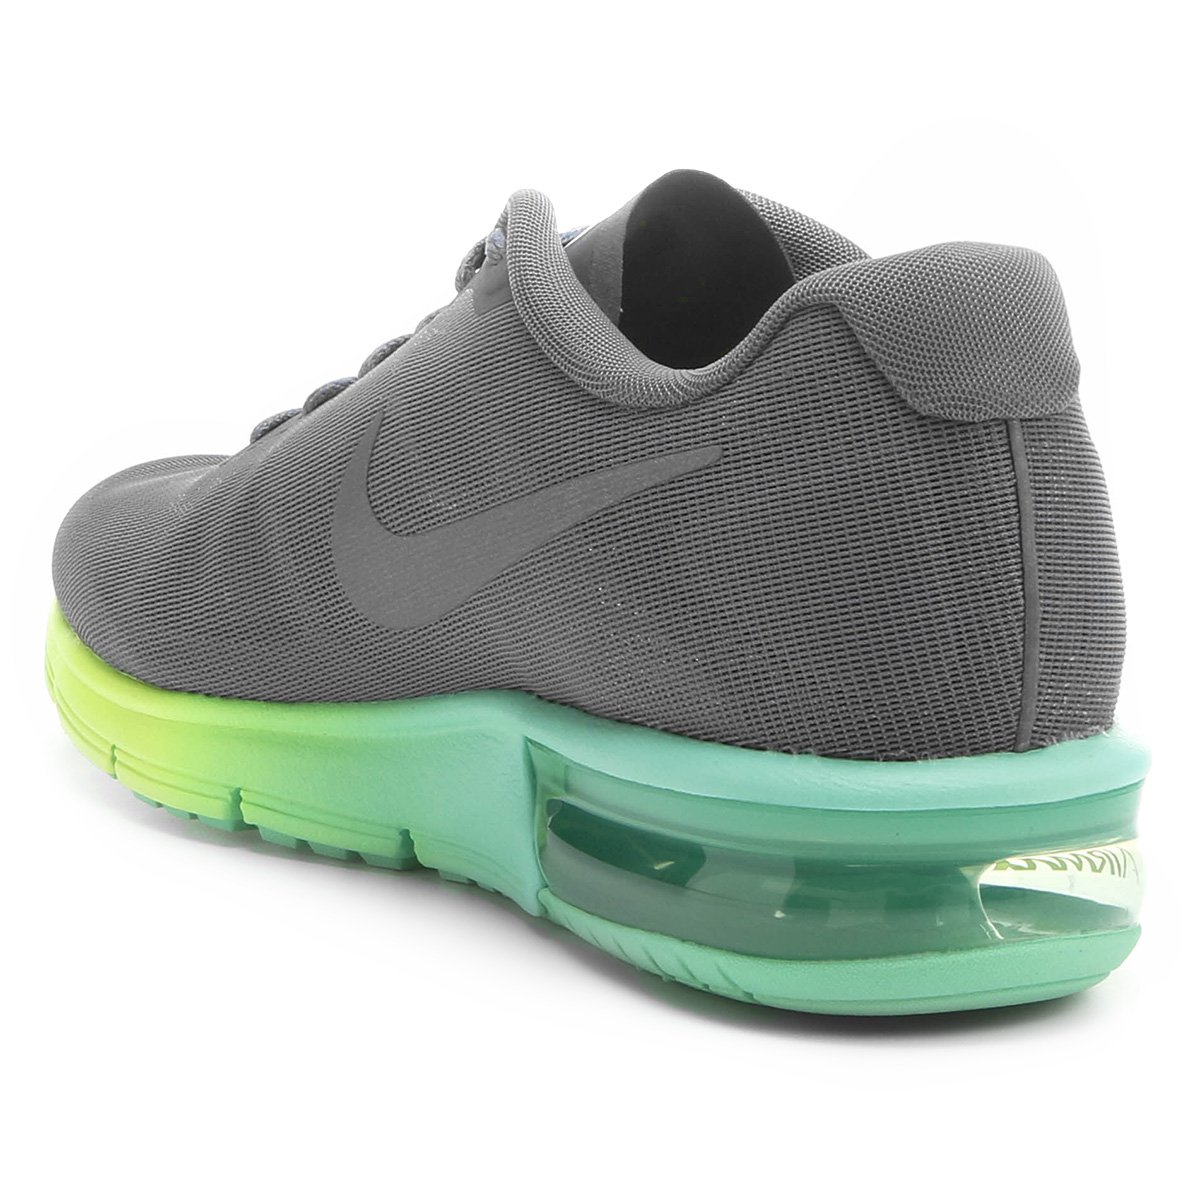 Nike Air Max Sequent verde